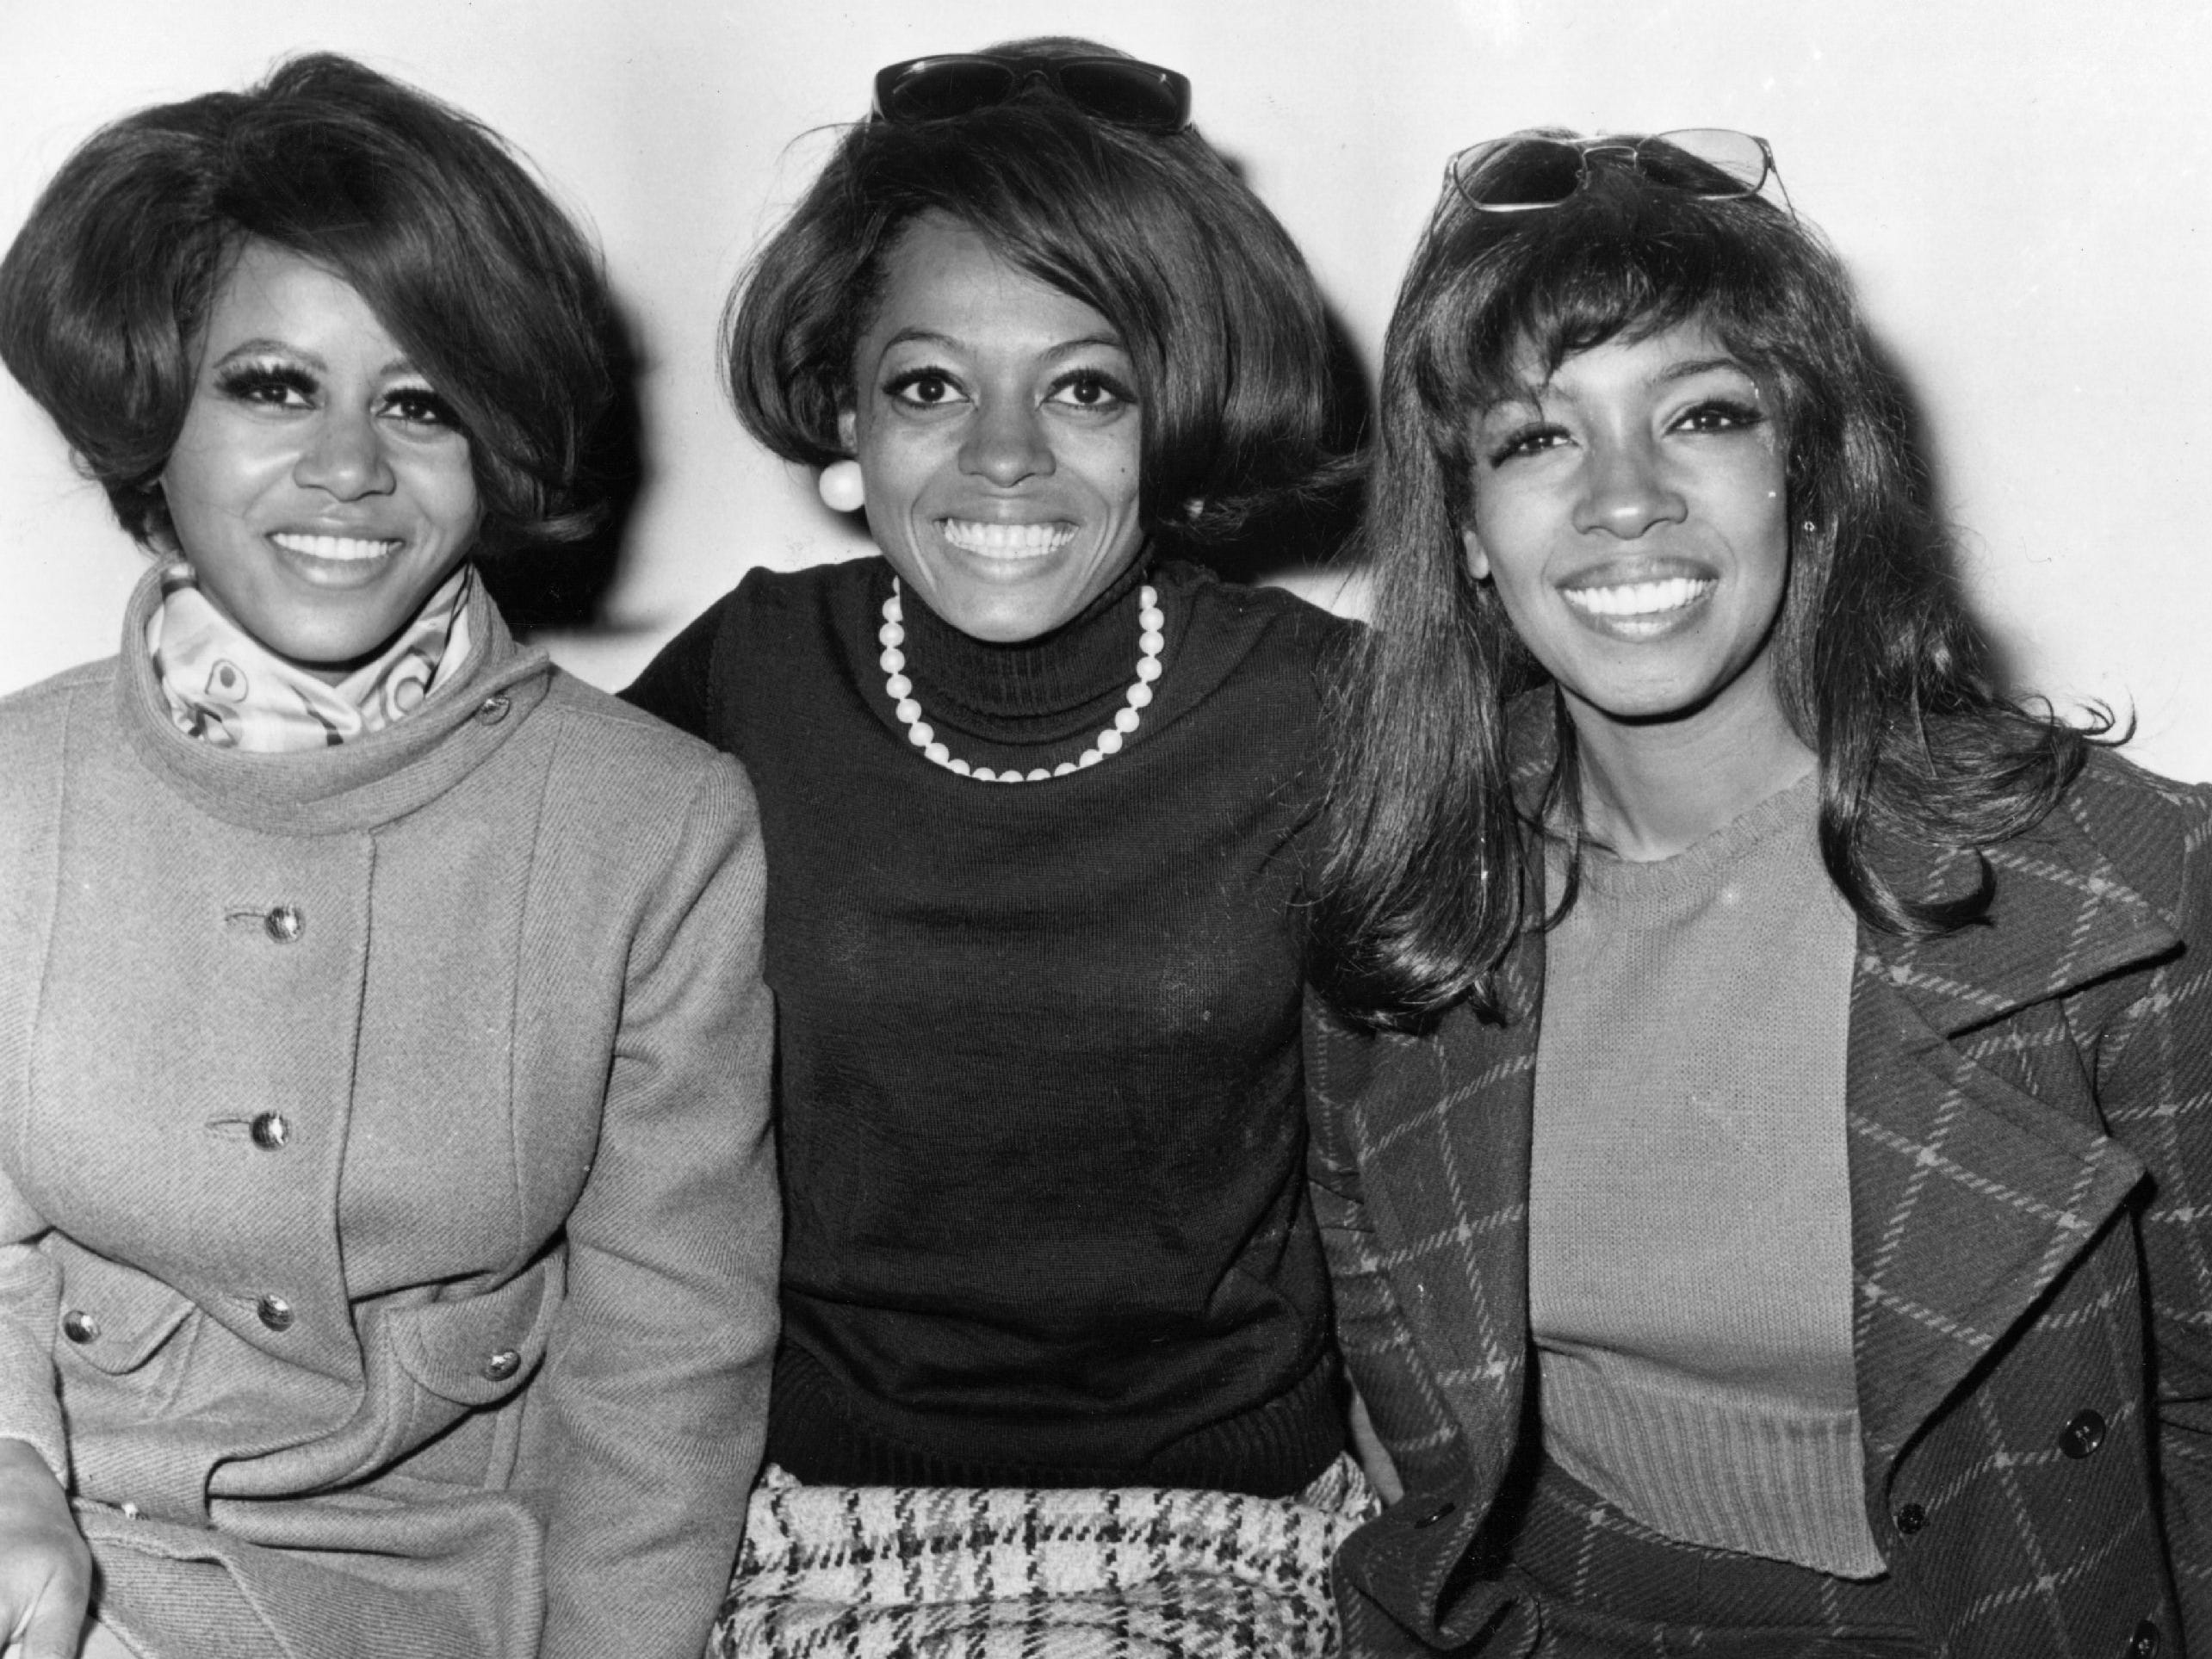 In 1967, Cindy Birdsong, left, started to stand in for Florence Ballard when she missed performances due to alcoholism. She's seen with Diana Ross and Mary Wilson on Jan. 22, 1968. By this time, she was a permanent member of The Supremes.